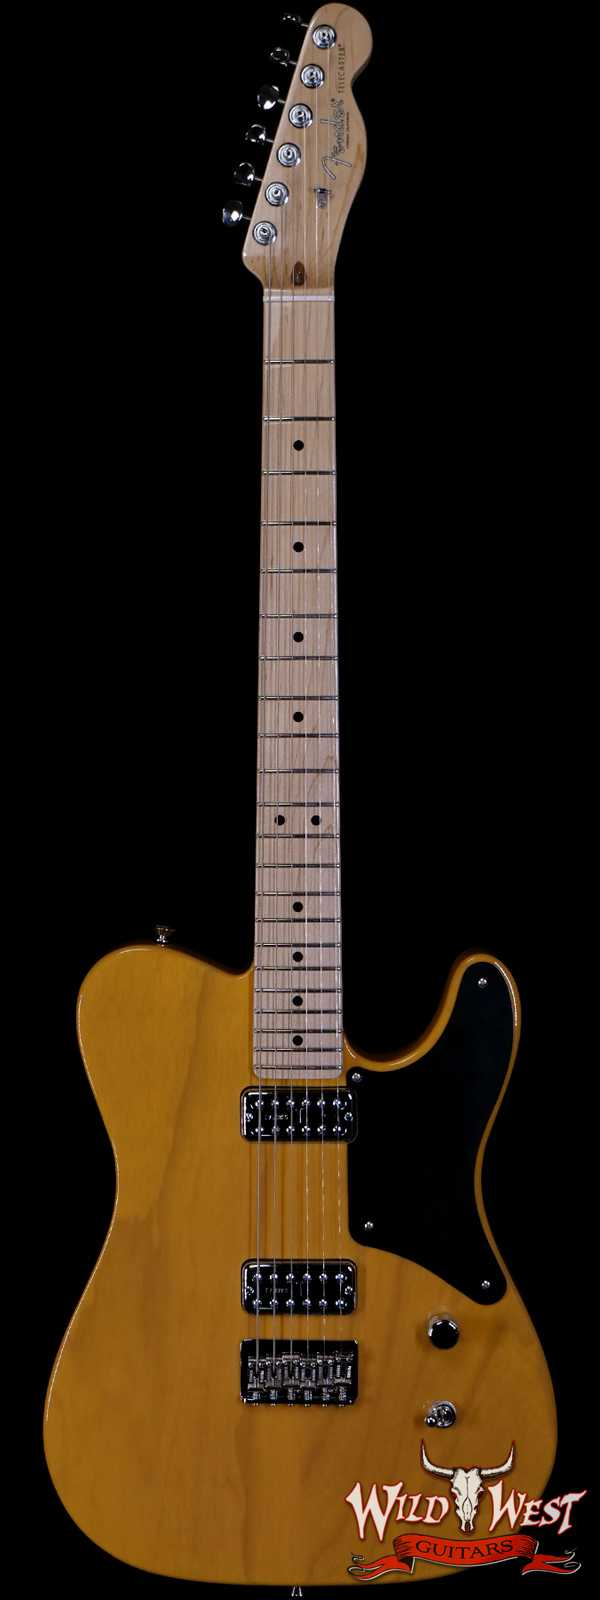 Fender USA Limited Edition Cabronita Telecaster Maple Neck TV Jones Classic Butterscotch Blonde LE09885